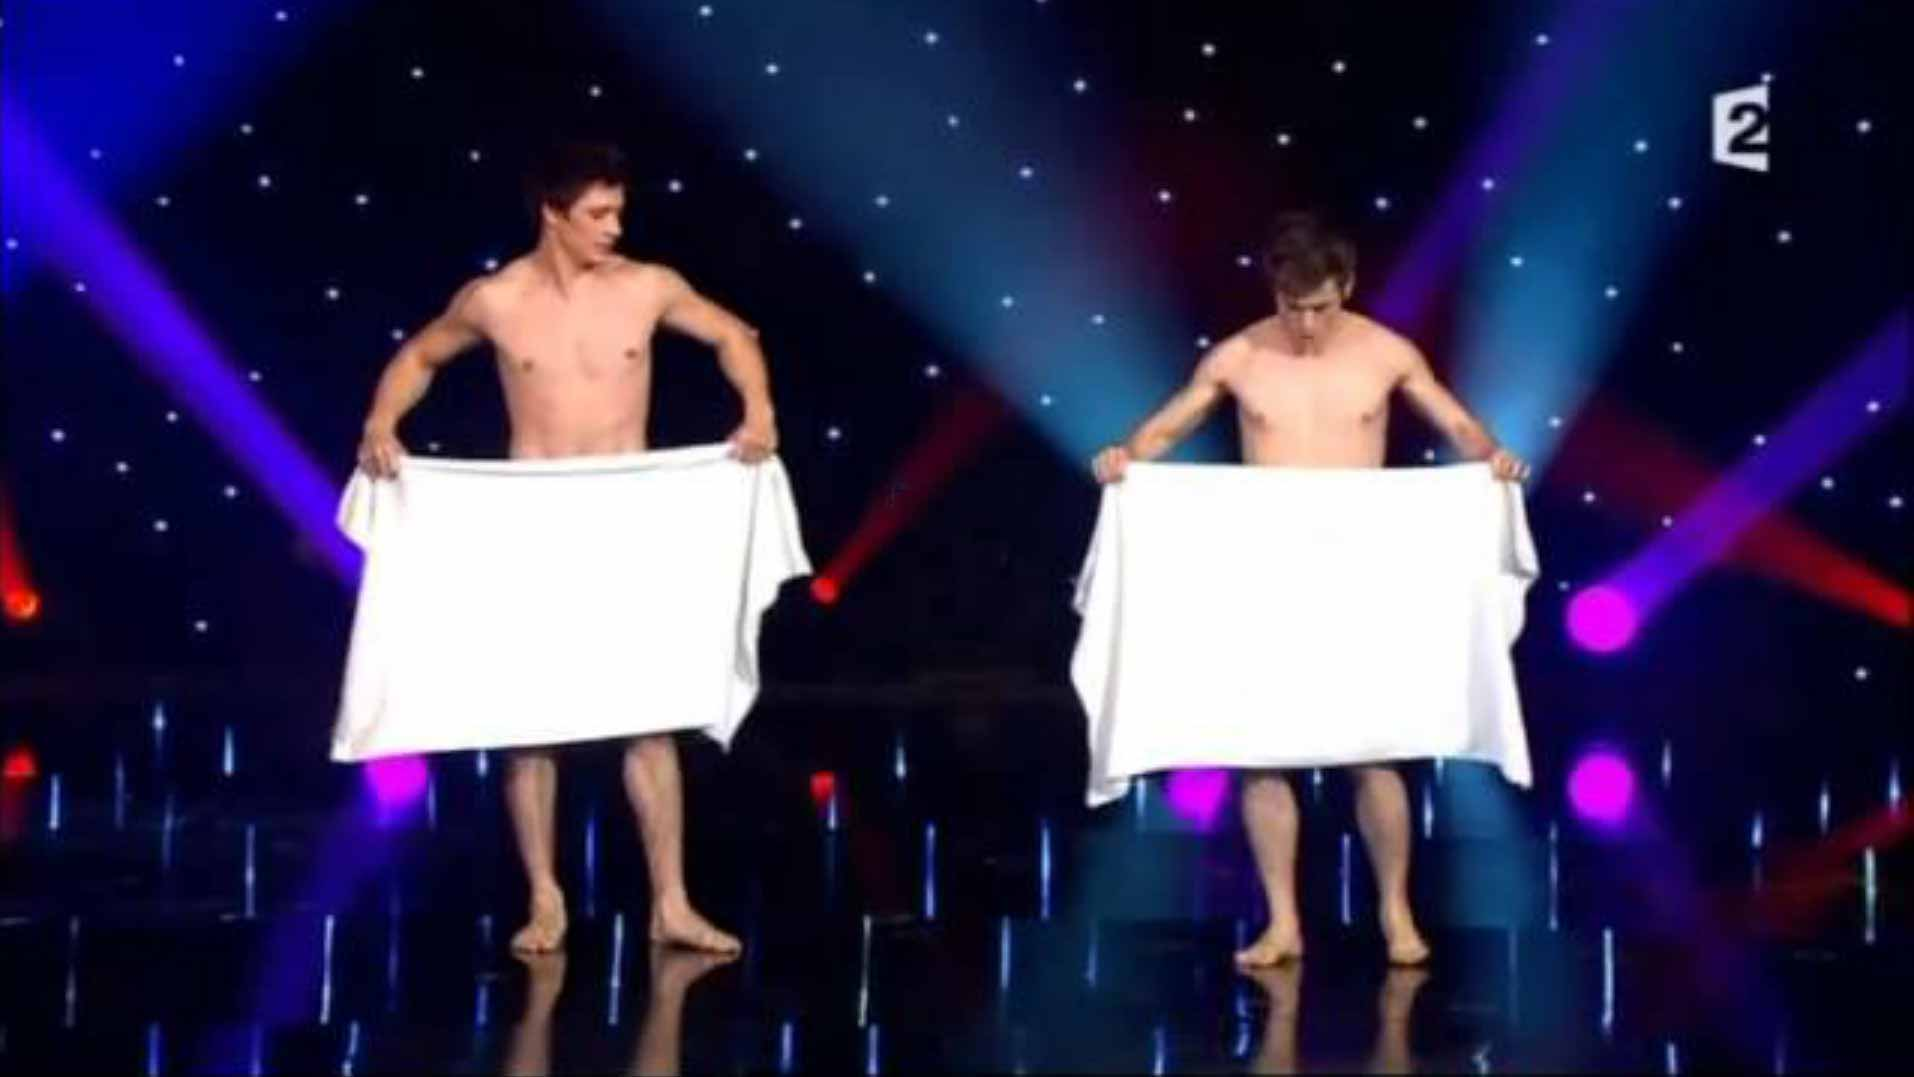 'Towel Dance' - Comedy Act By Les Beaux Freres